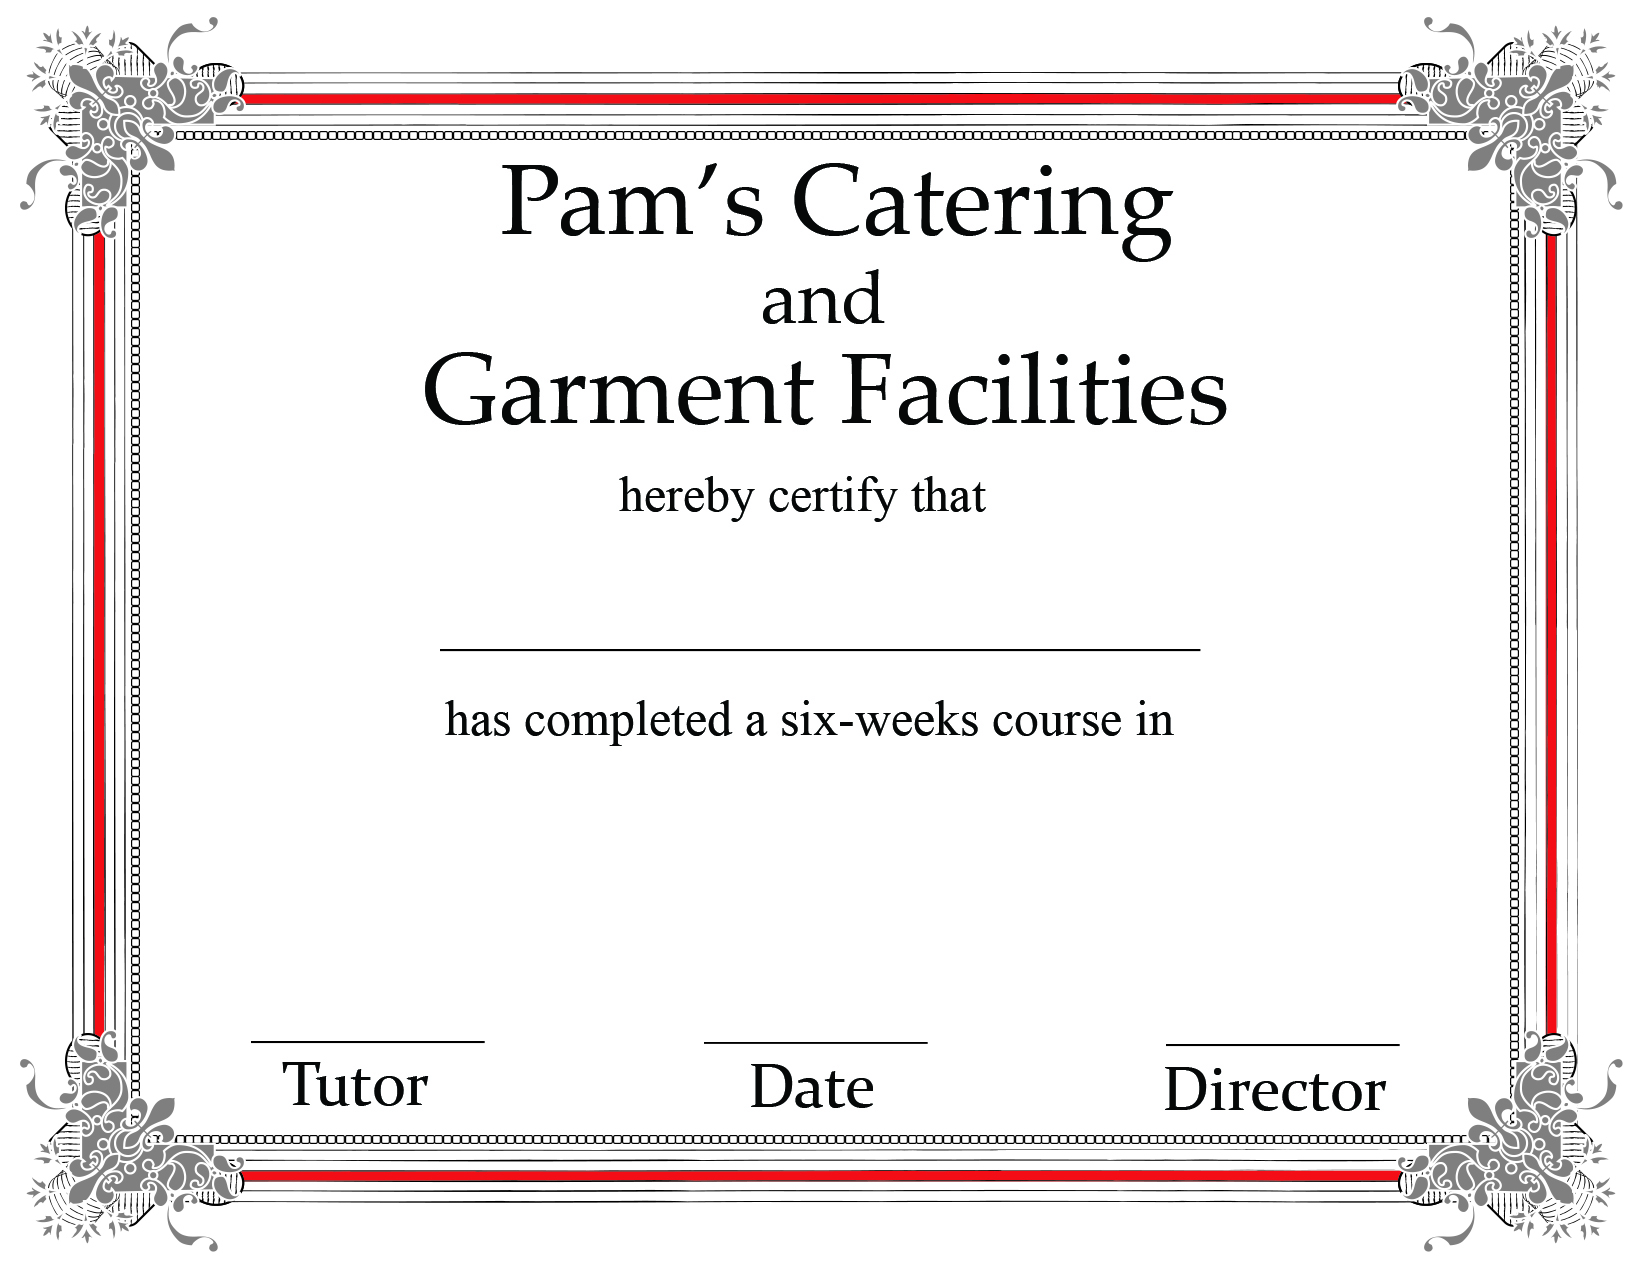 Pam's Catering Certifications